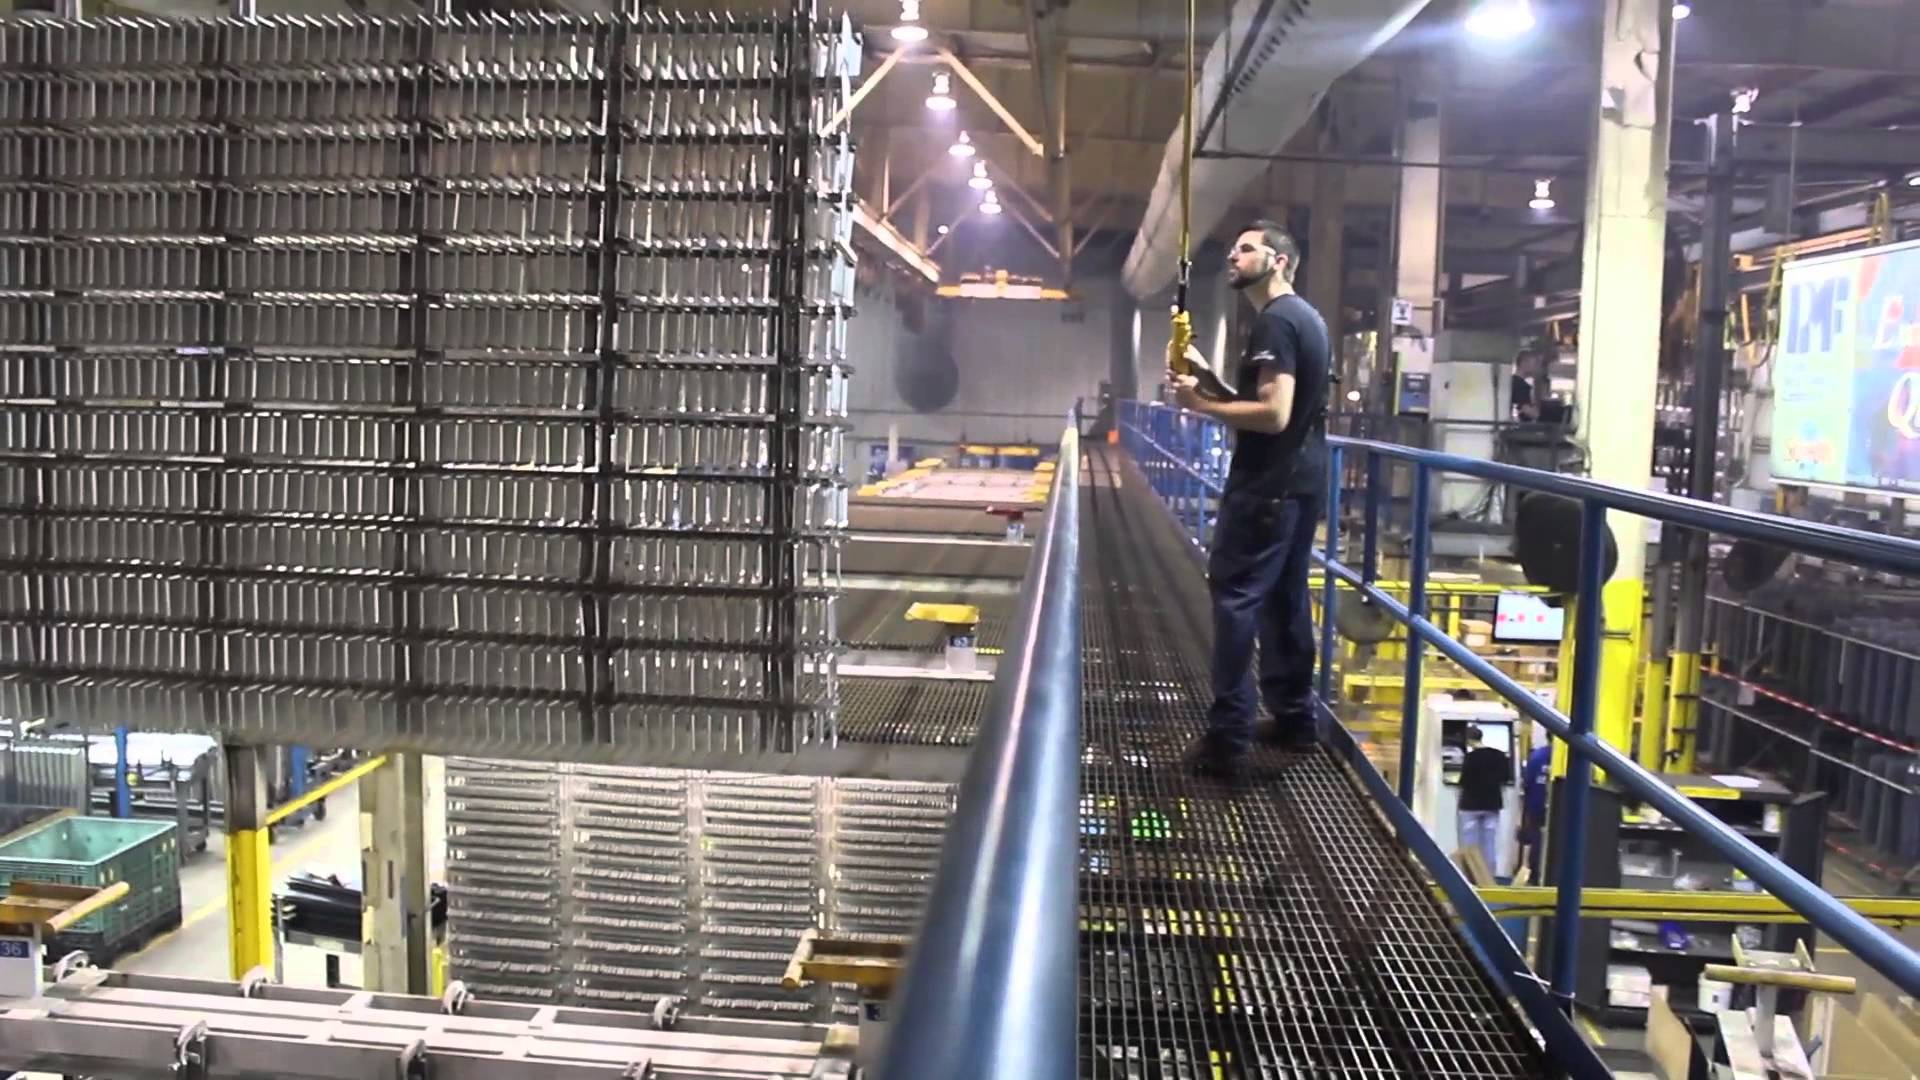 Pioneer Metal Operates Seven Facilities Across The United States In Michigan 3 Minnesota Wisconsin Oregon Indiana And One Facility El Marques